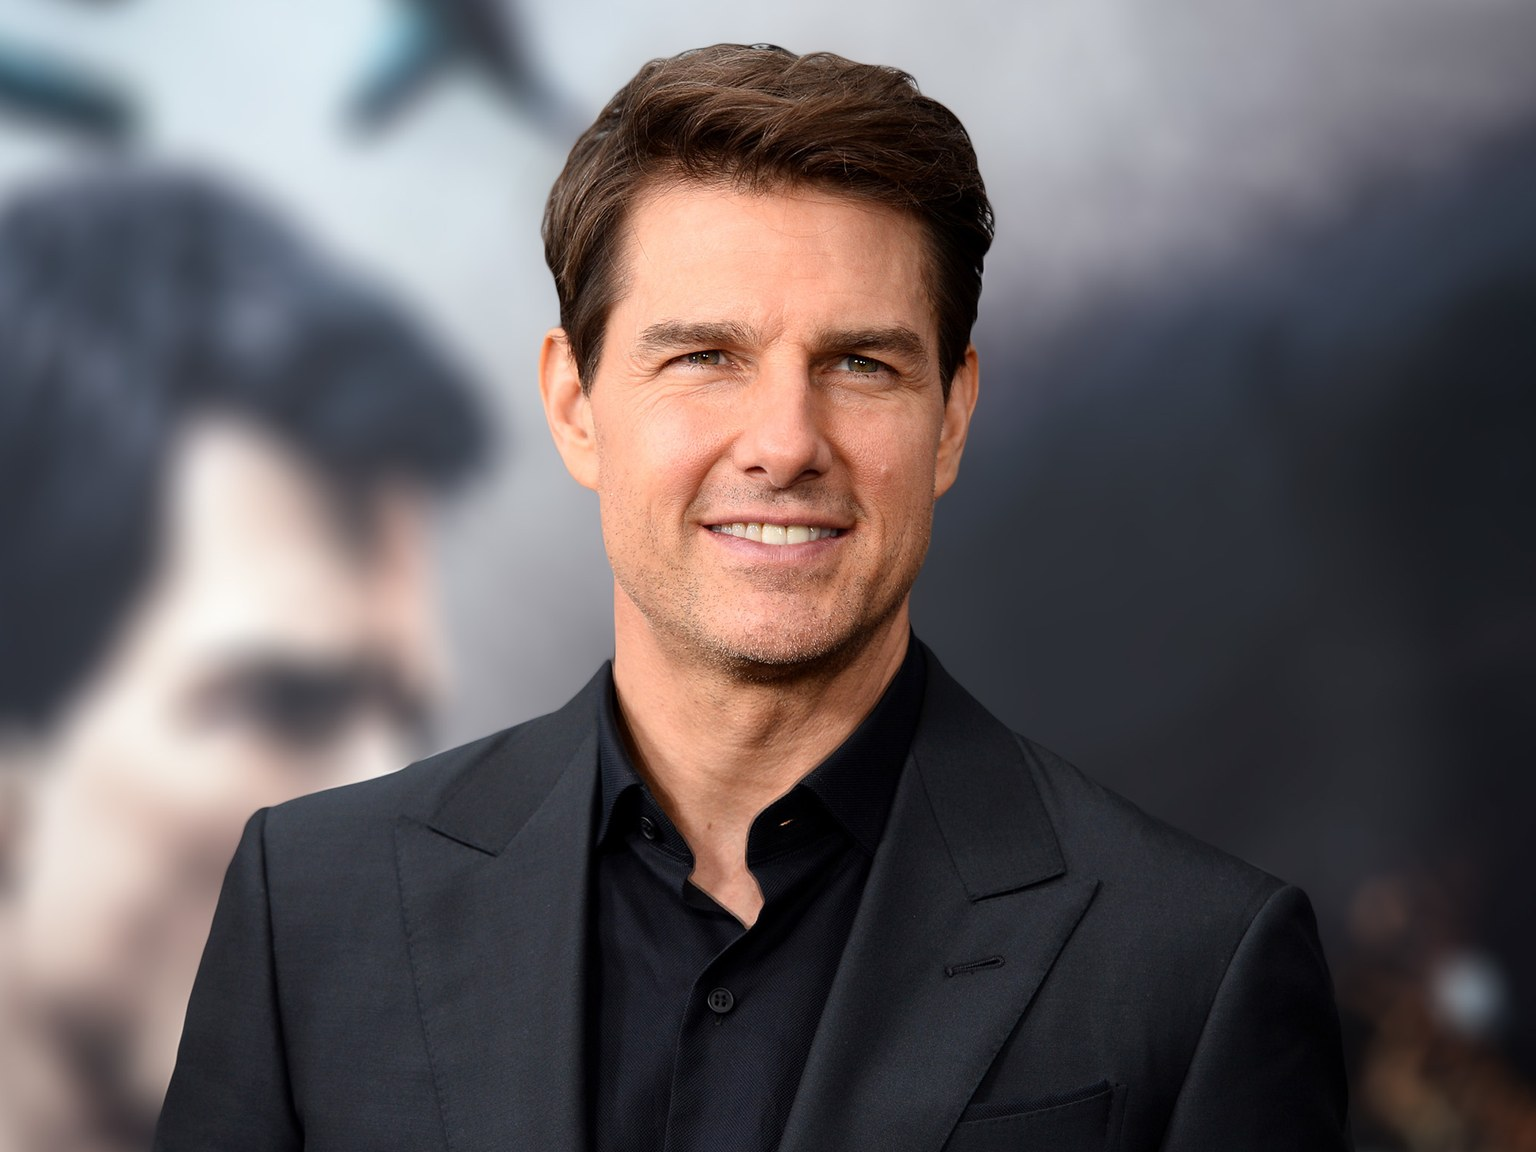 Tom Cruise American Actor and Filmmaker